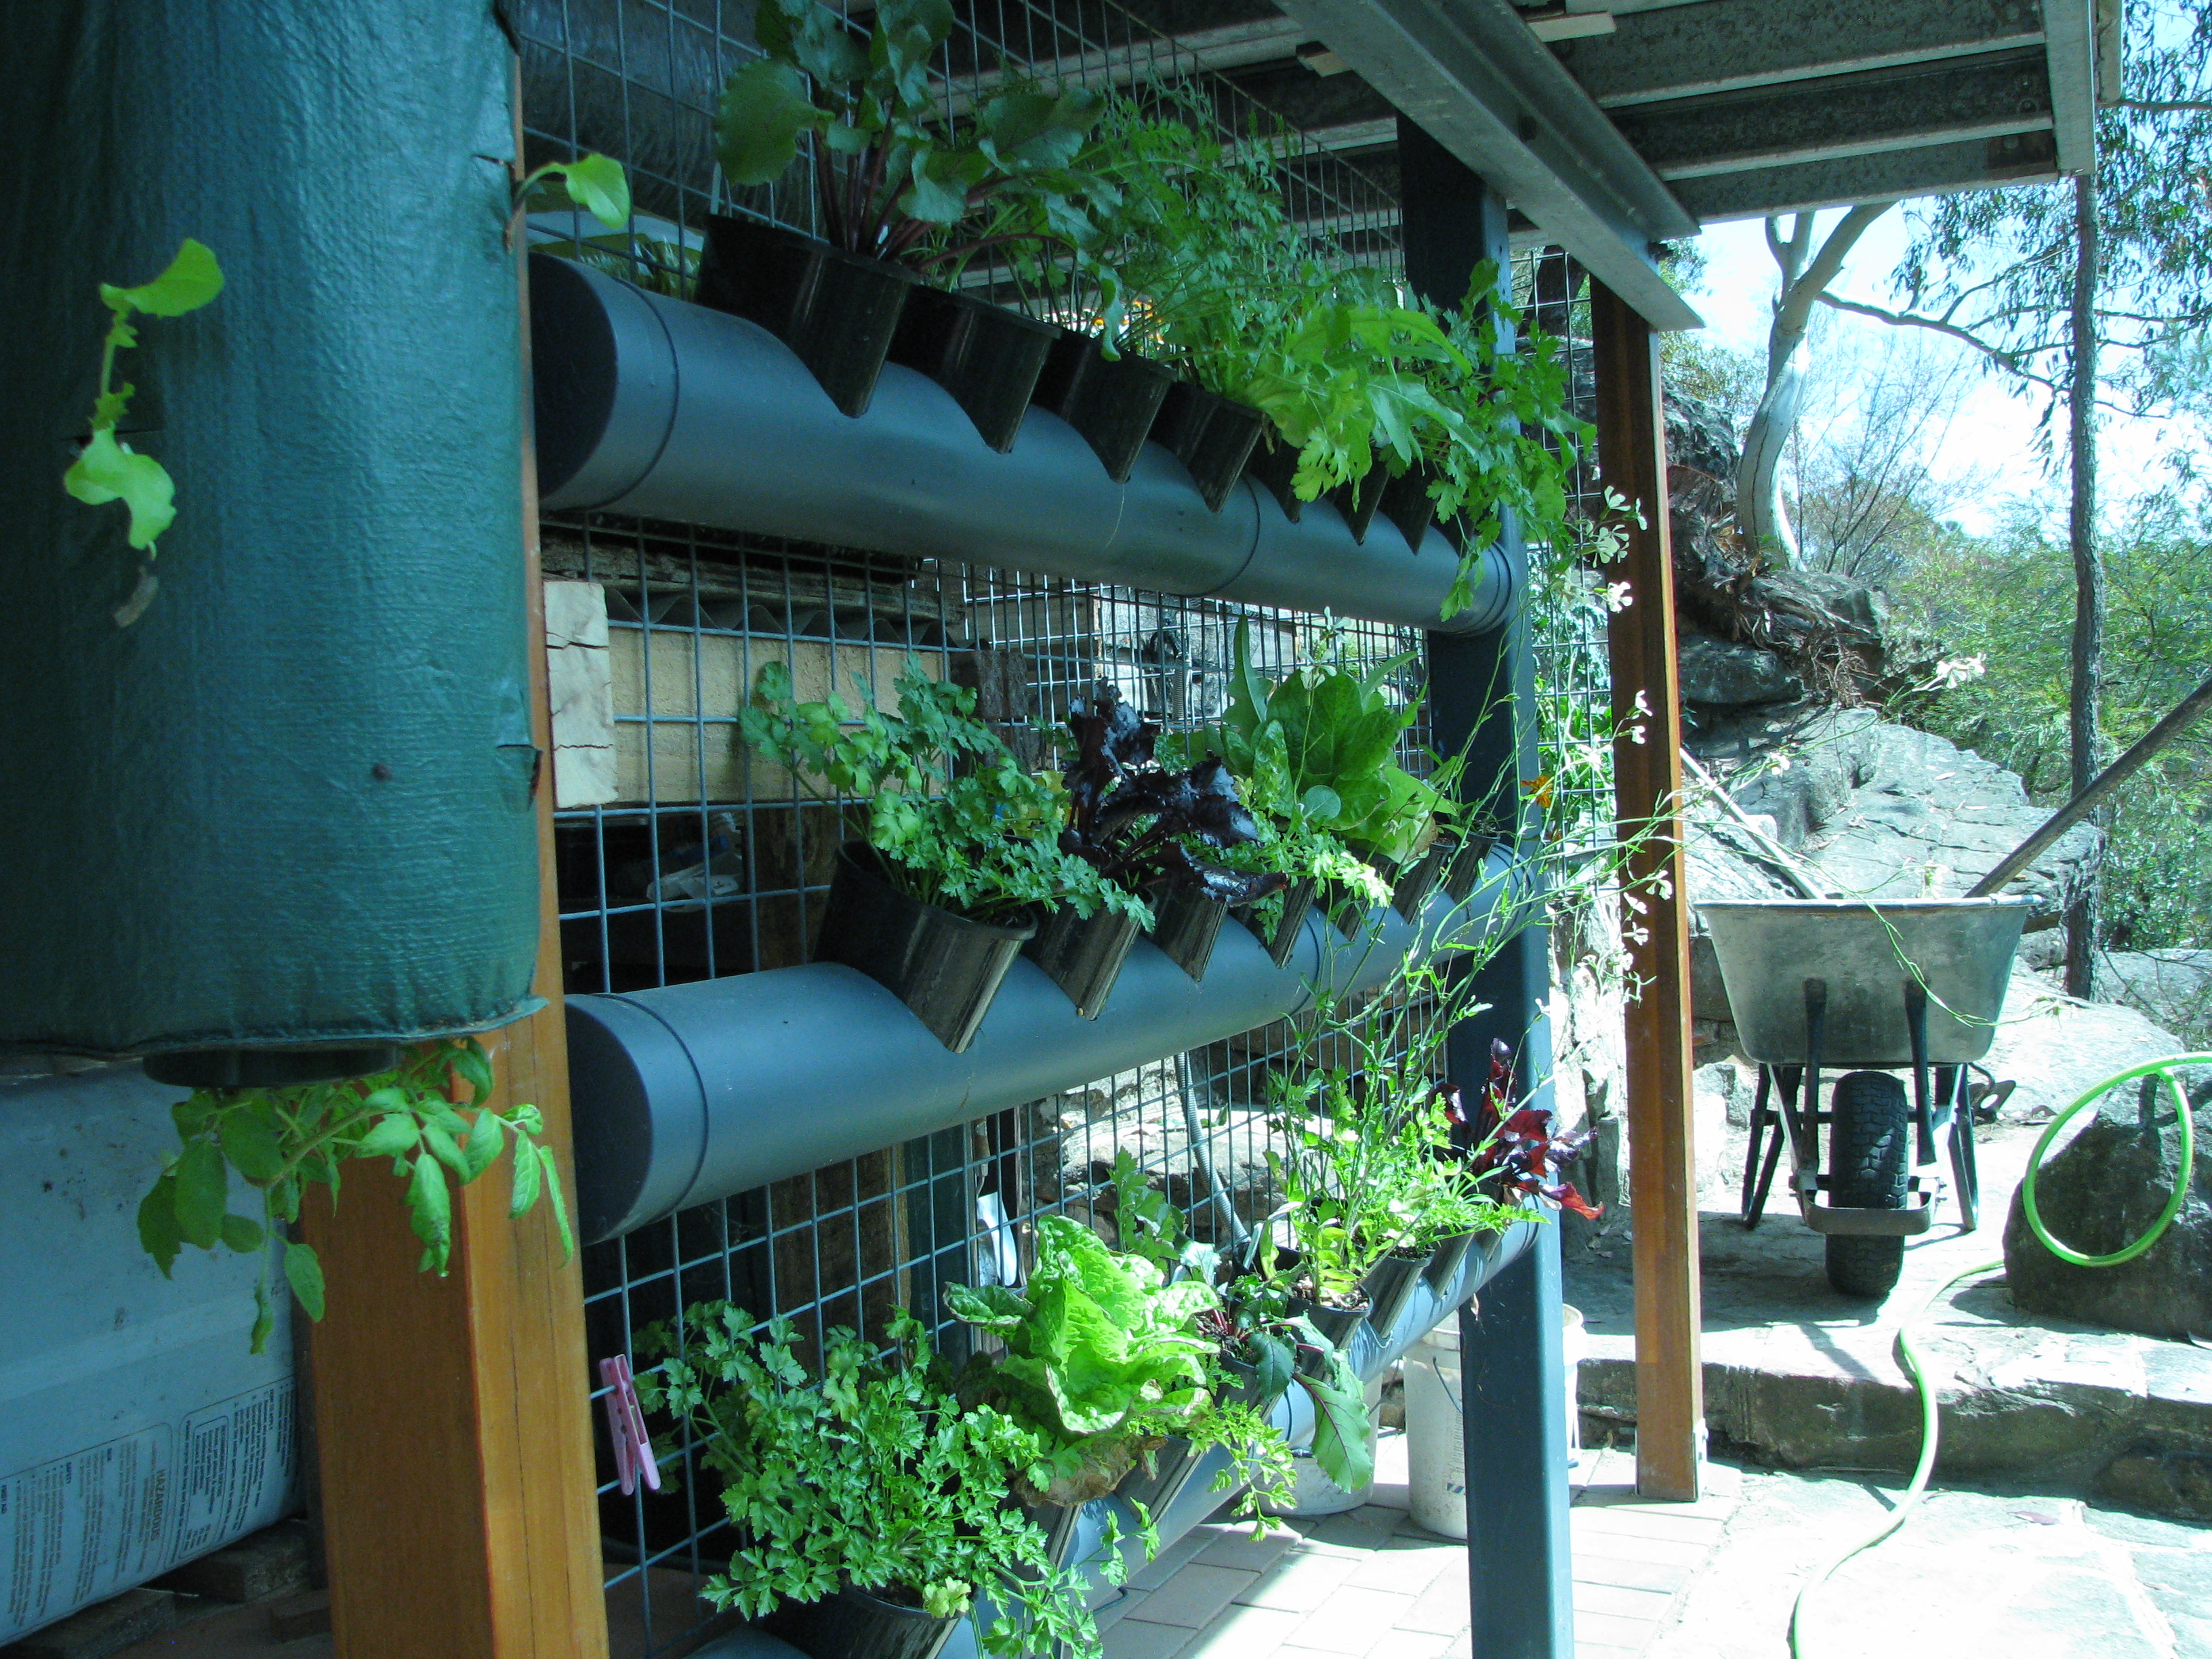 Vertical garden from pvc pipe ordinary 2 extraordinary - Vertical garden ...